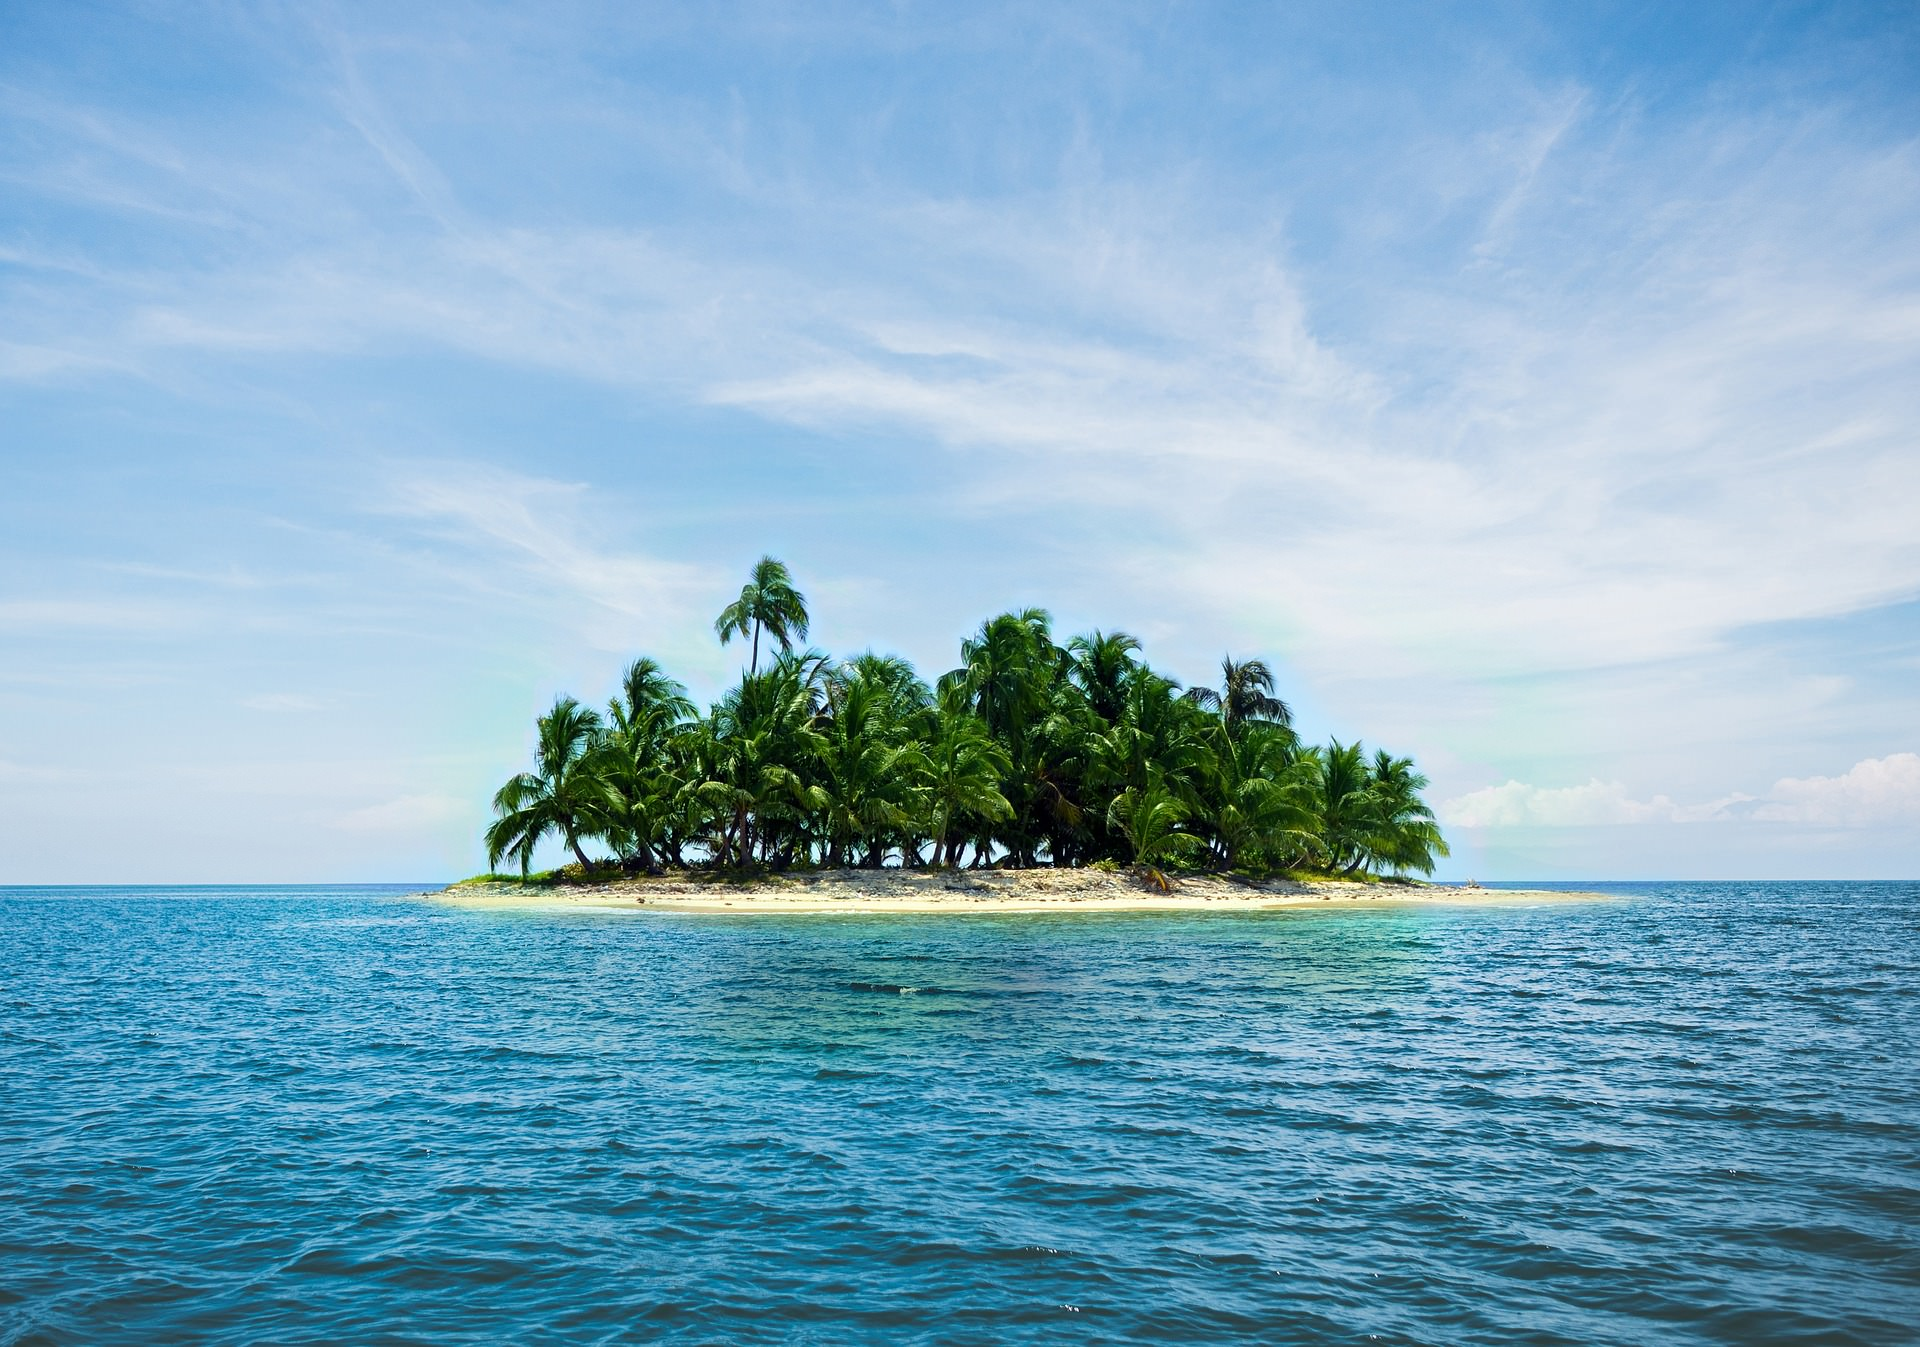 An image of an island in the sea that is difficult to deliver parcels to.